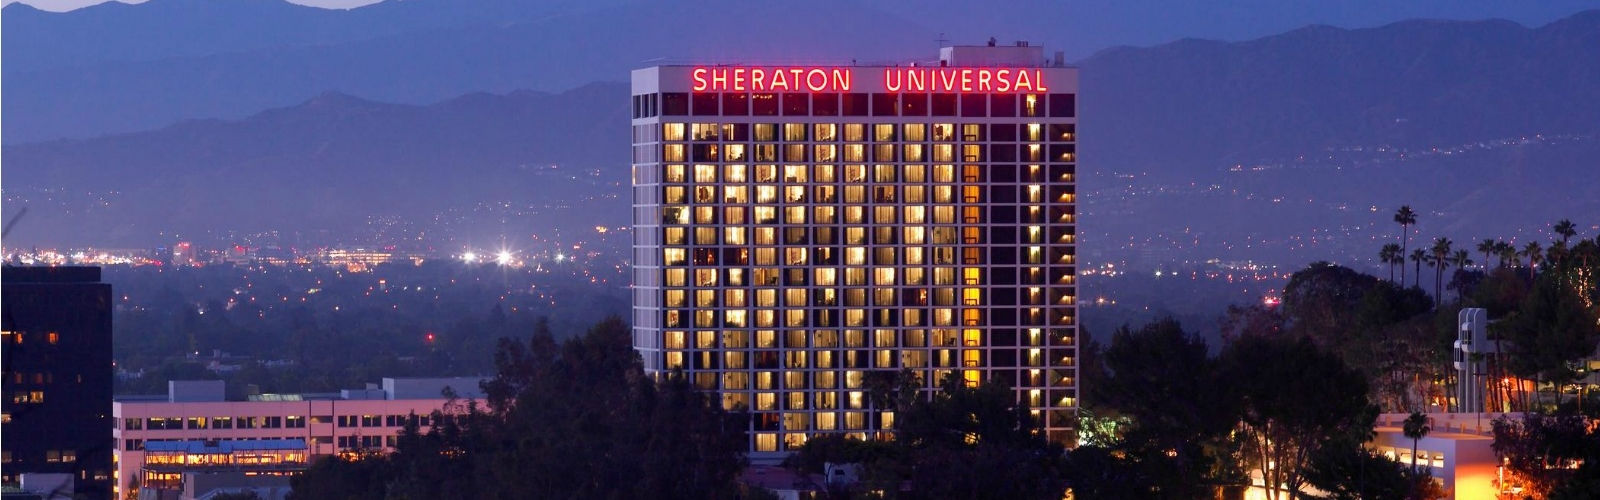 Hotels In Hollywood Ca Sheraton Universal Hotel